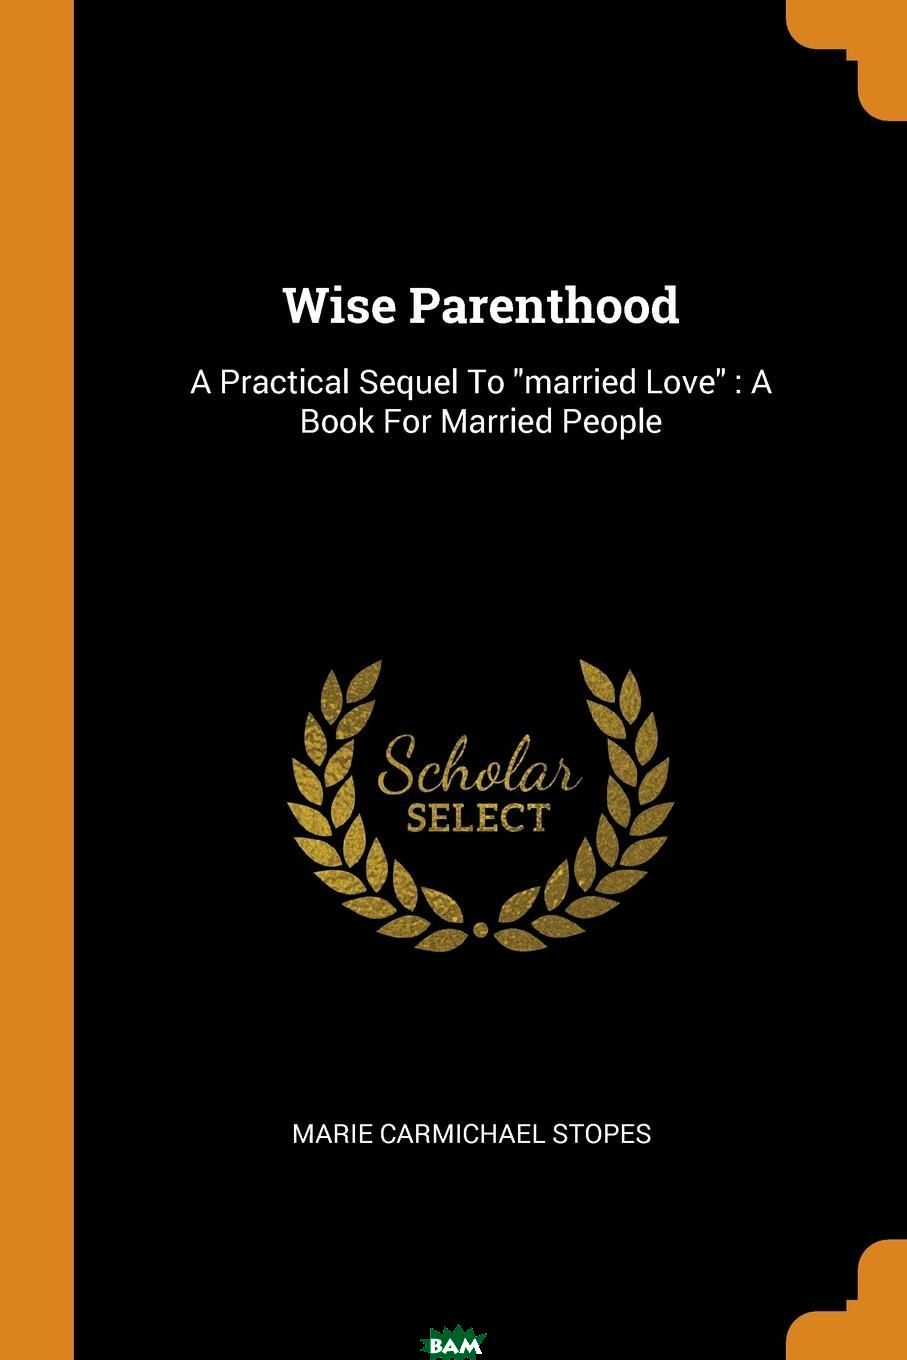 Wise Parenthood. A Practical Sequel To married Love : A Book For Married People, Marie Carmichael Stopes, 9780353625365  - купить со скидкой